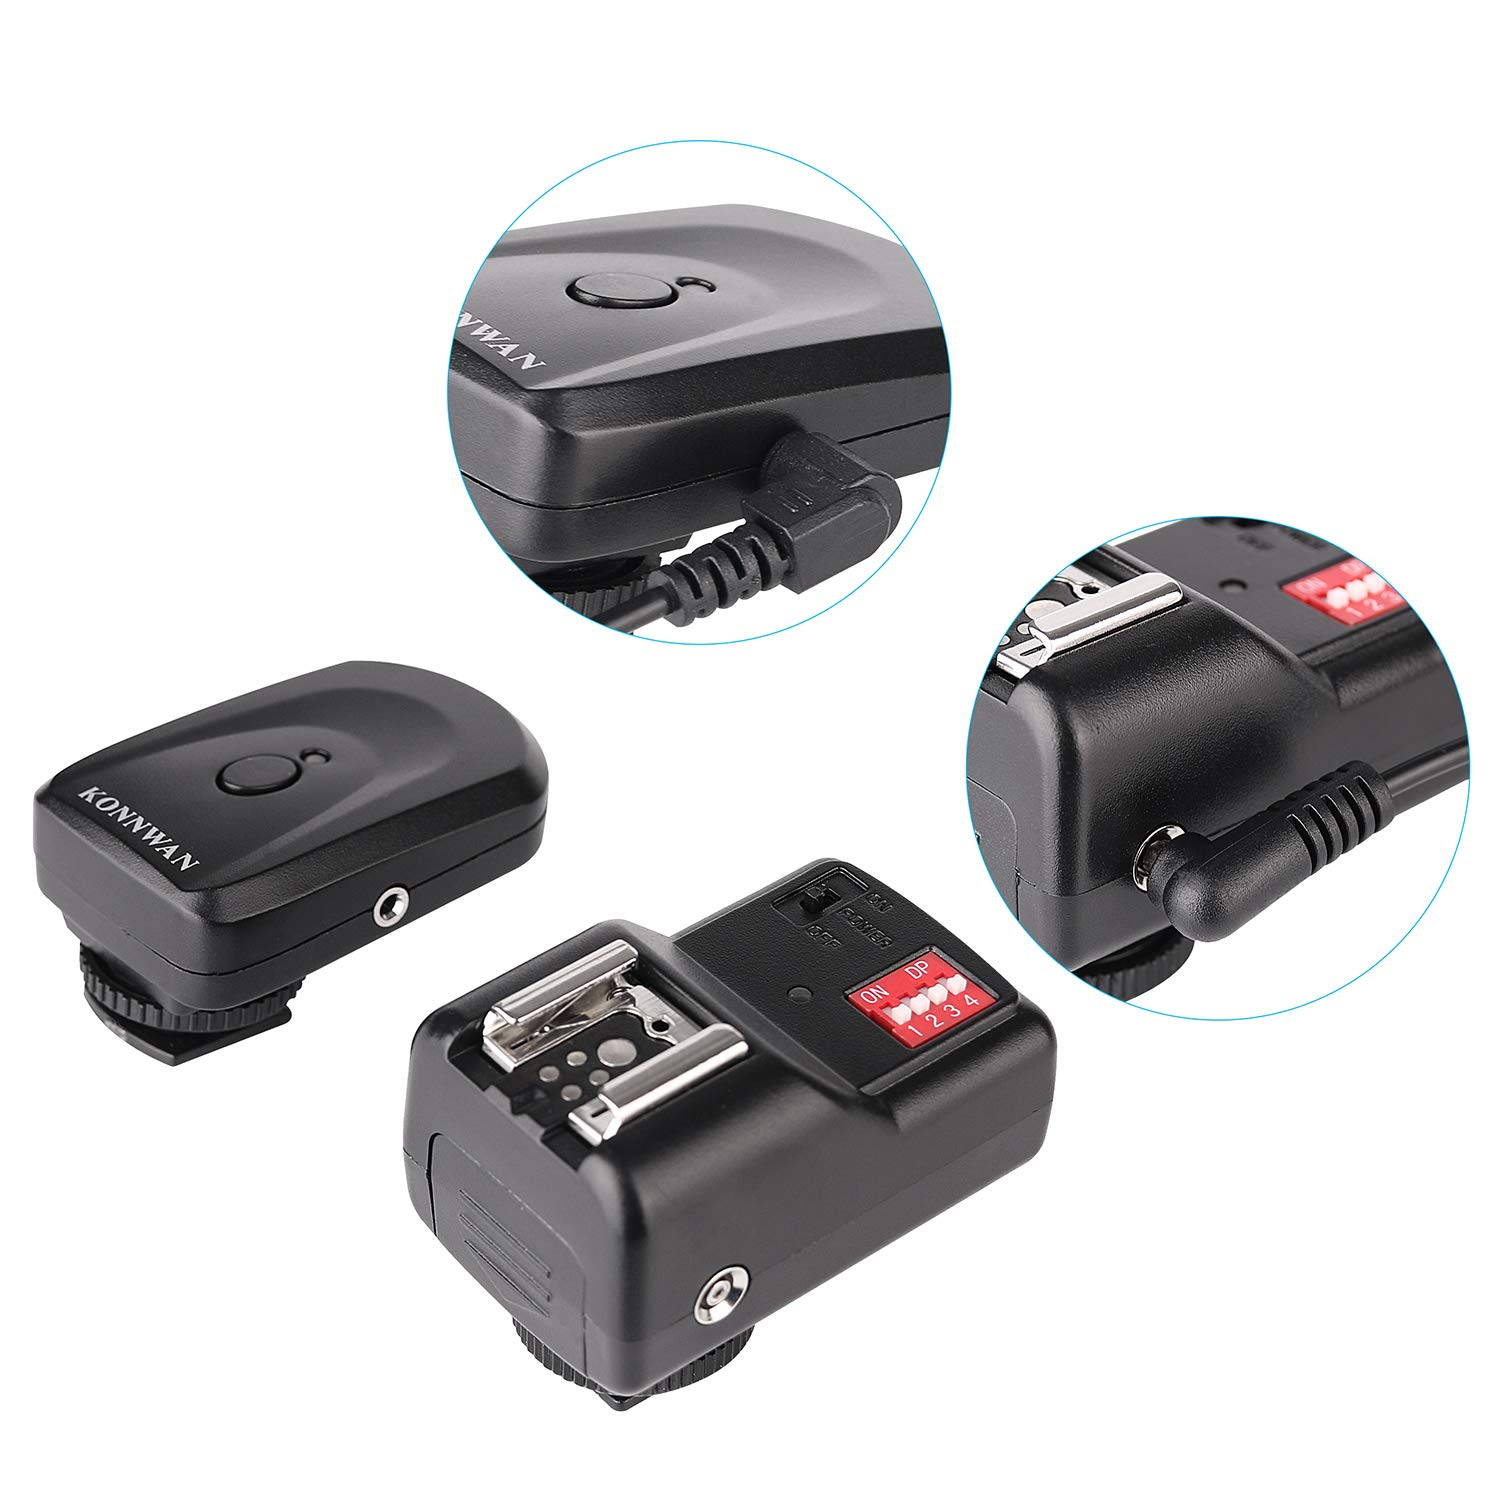 KONNWAN Wireless Flash Trigger Transmitter and Receiver 16 Channel Wireless Remote FM Flash Speedlite Radio Trigger with Receiver for Flash Units with Hot Shoe GY16-1